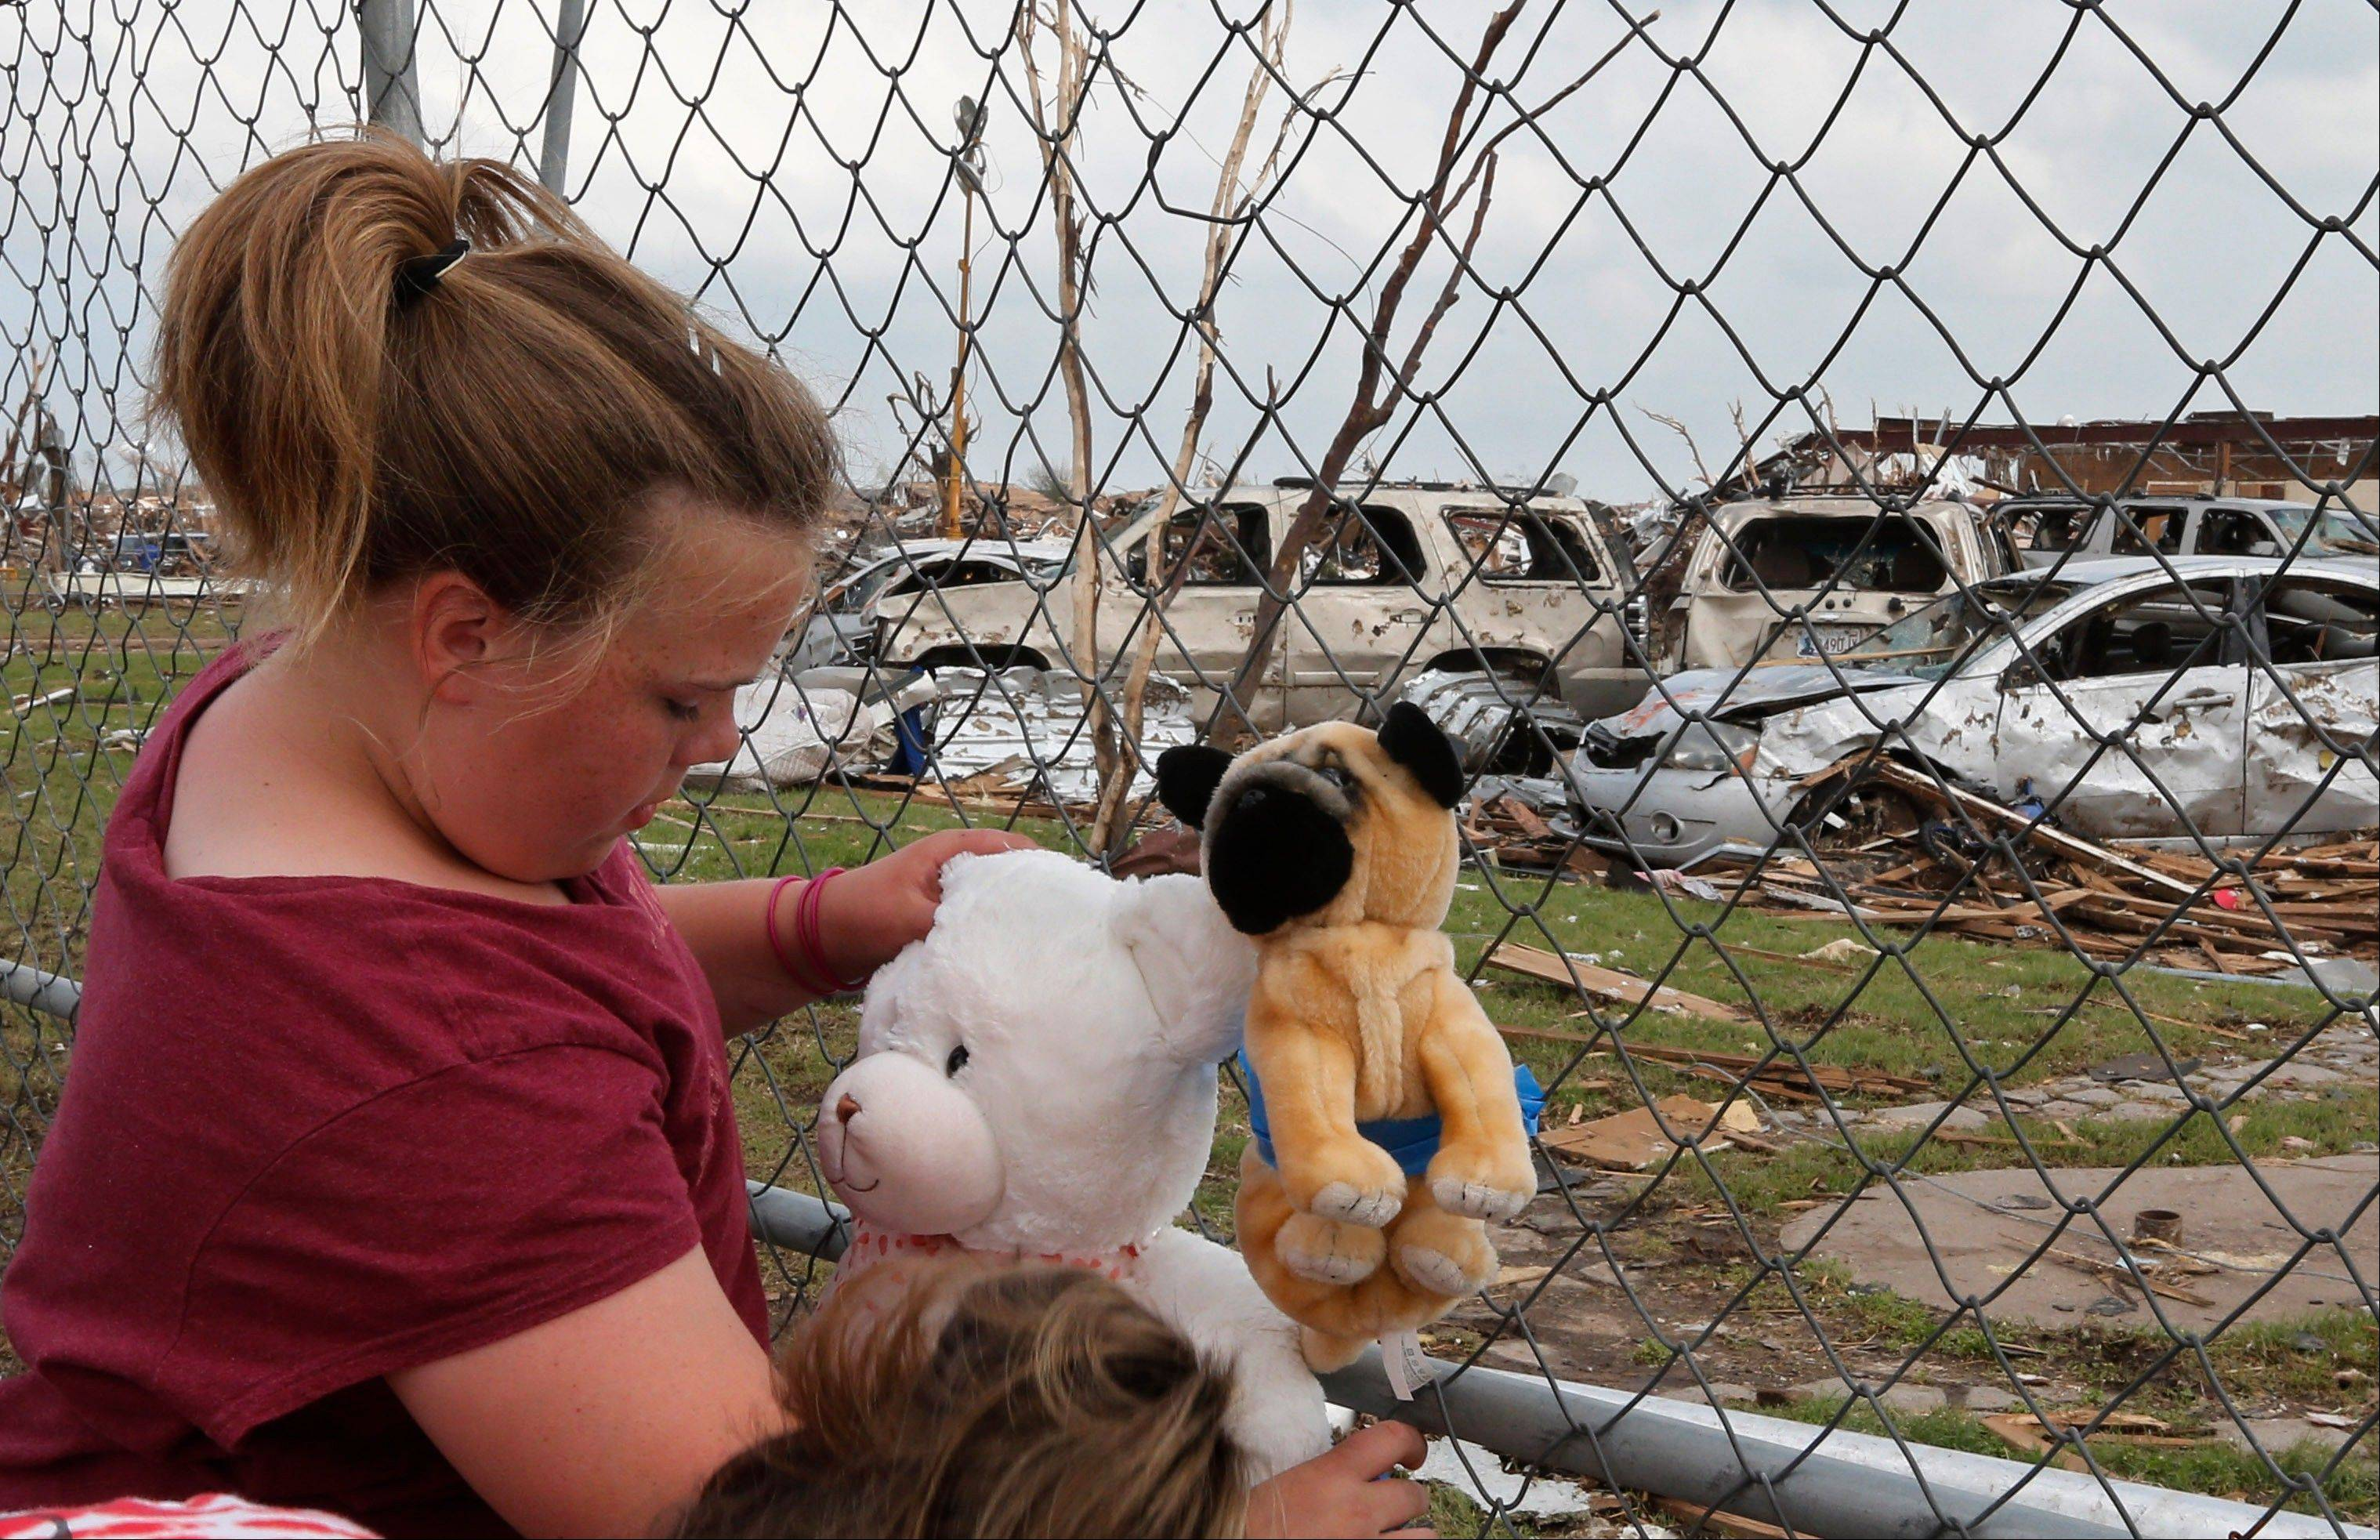 Ashlyn Kelley, age eleven, who is in the fifth grade and was in the Plaza Towers elementary school when the Moore, Okla. tornado hit, ties stuffed animals Friday to the perimeter fence as a memorial to the seven students who died.